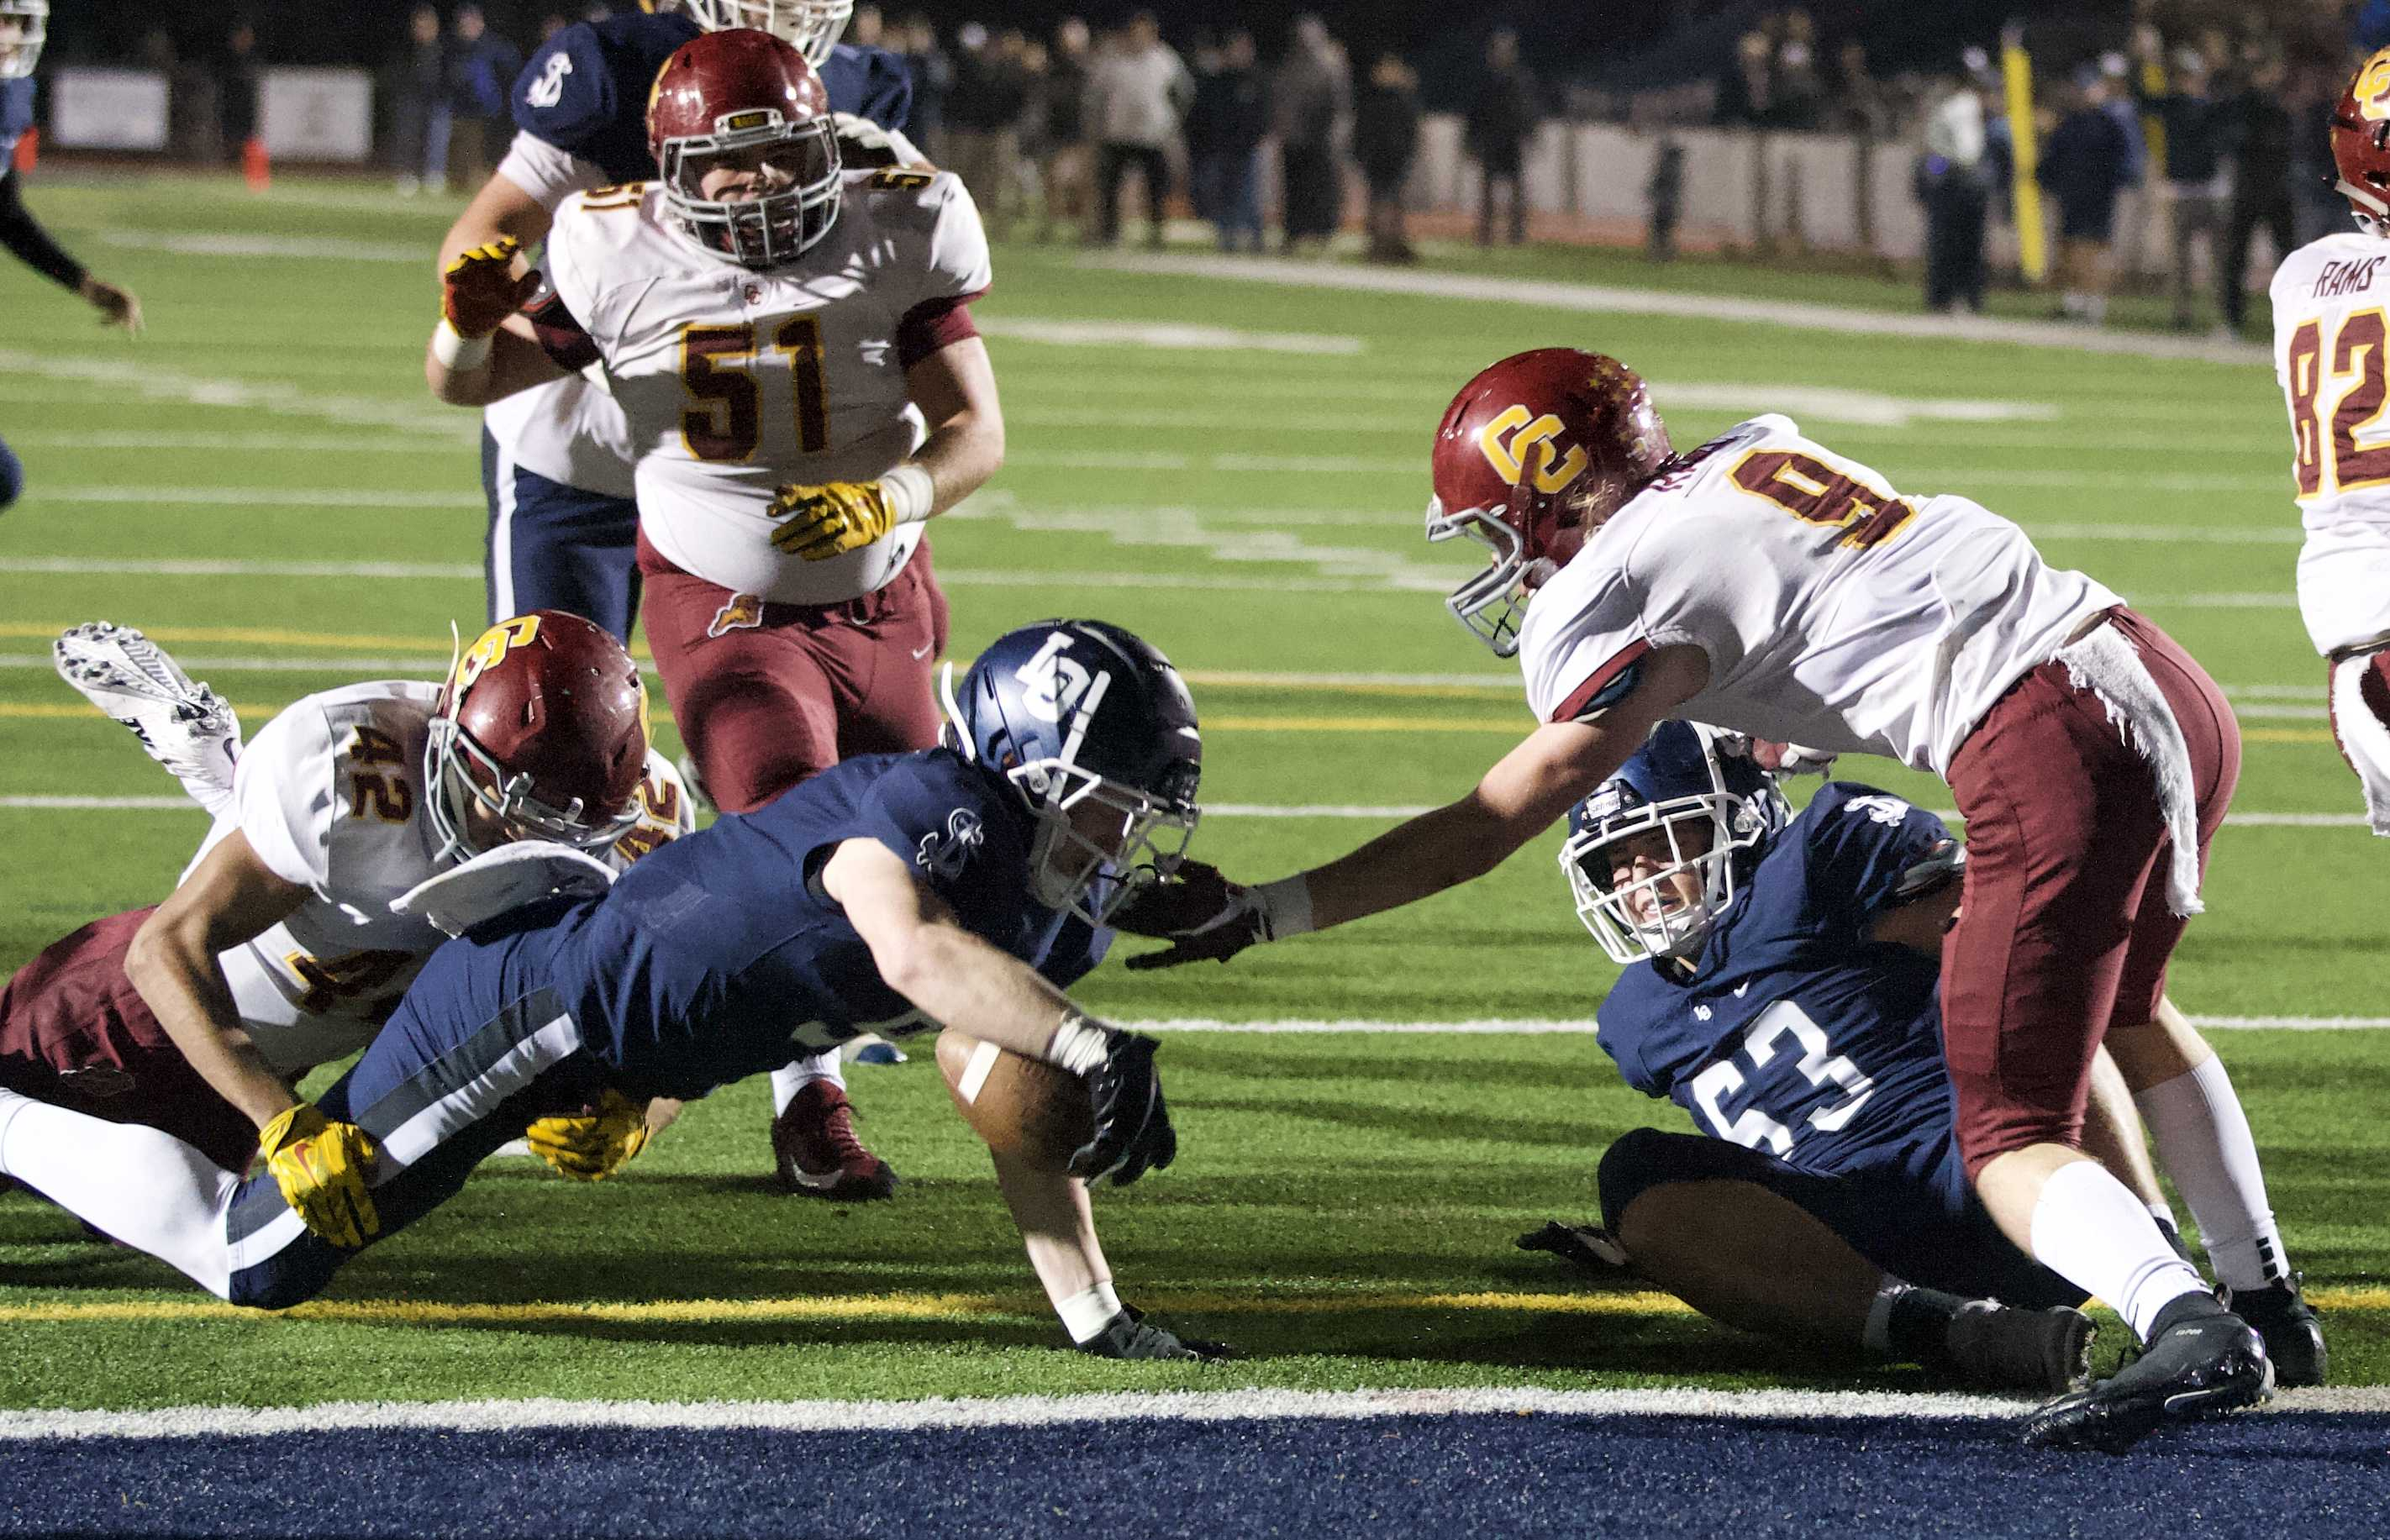 Casey Filkins scores the first of his three touchdowns in Lake Oswego's win Friday. (Photo by Norm Maves Jr.)